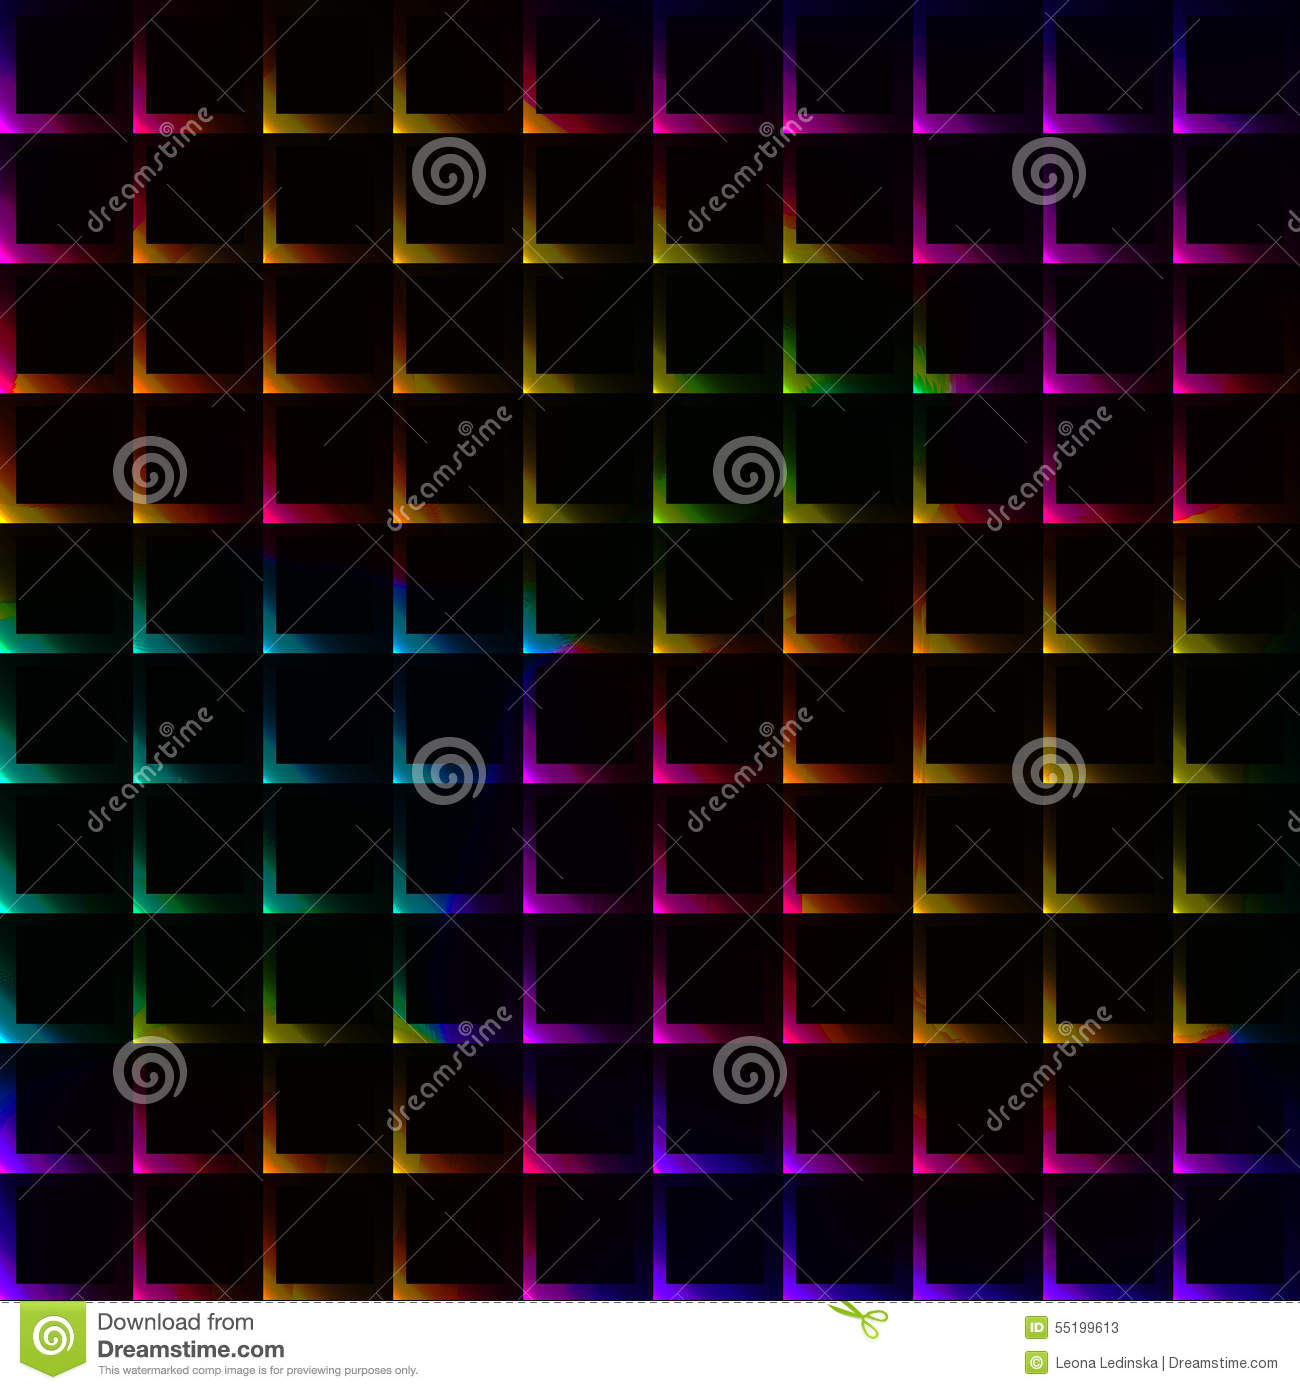 Neon Rainbow Bright Color Grid With Thorns - Seamless